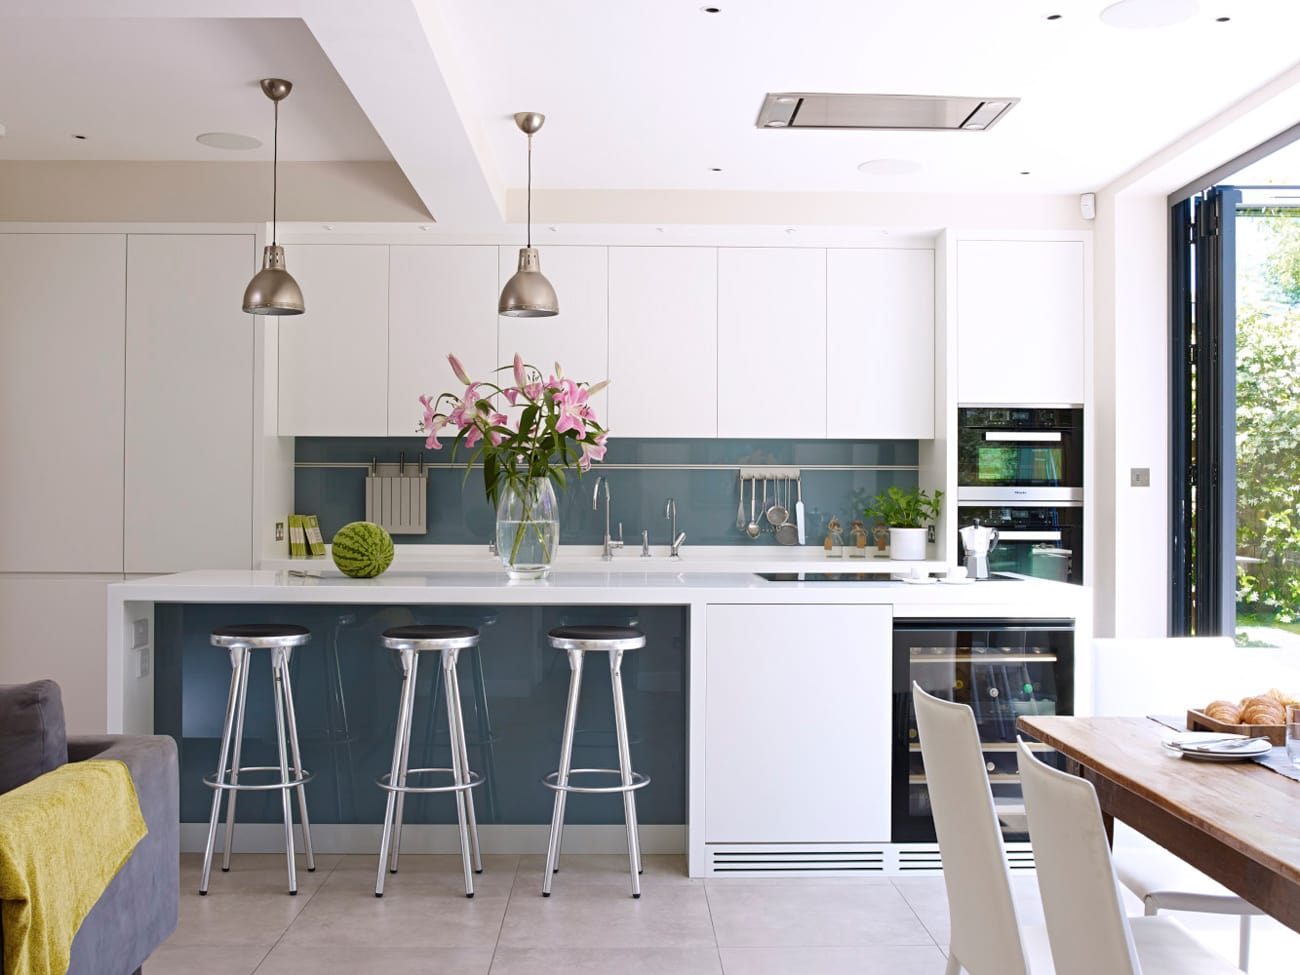 Classic, modern Pike kitchen extension concept with wine fridge